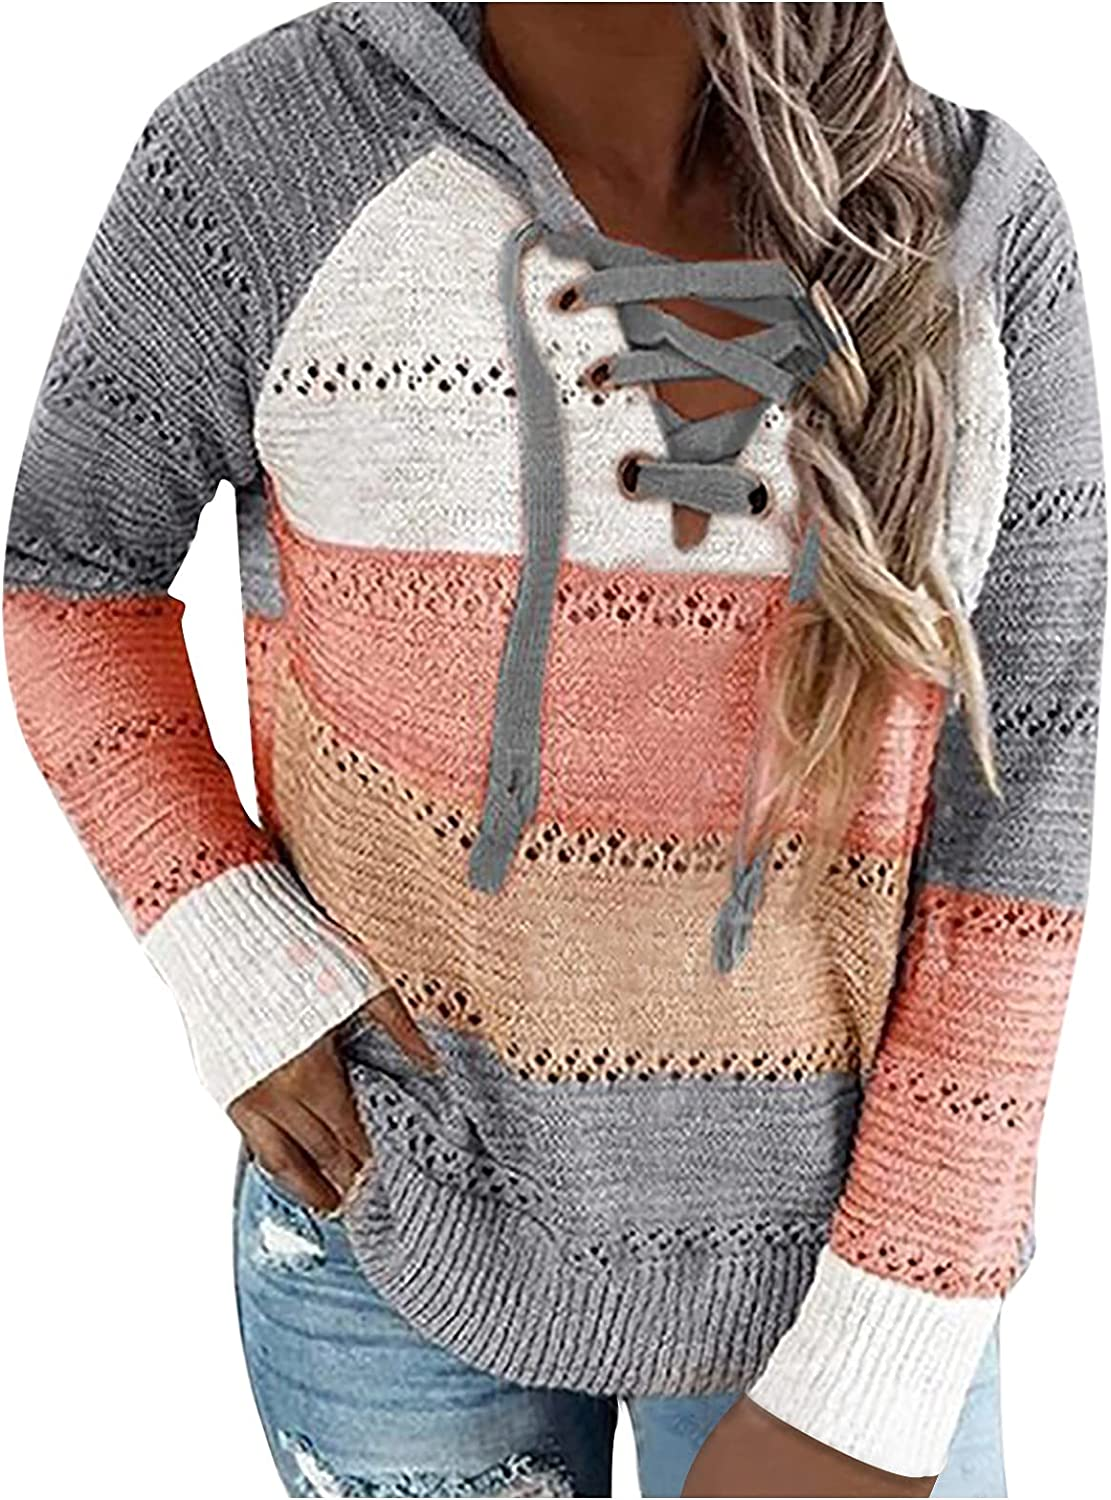 Kanzd Sweaters for OFFicial shop Credence Women Fashion Trendy Sleeve Neck V Front Long